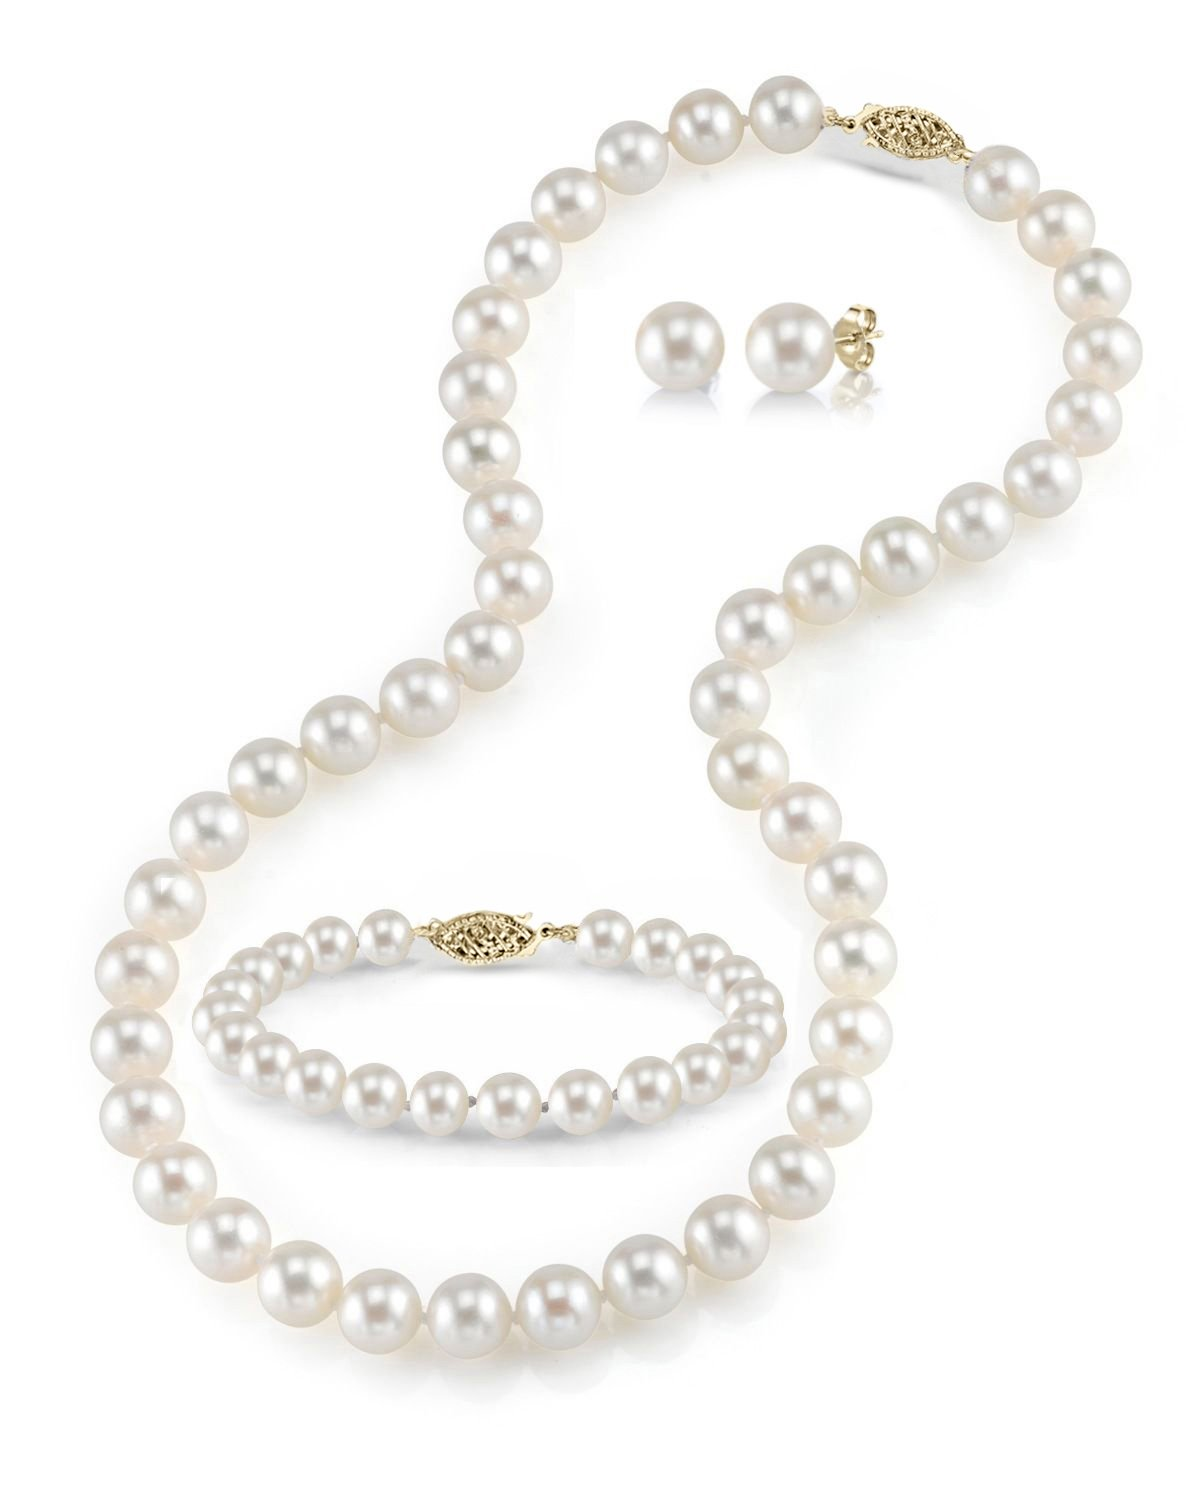 THE PEARL SOURCE 14K Gold 7-8mm Round White Freshwater Cultured Pearl Necklace, Bracelet & Earrings Set in 17'' Princess Length for Women